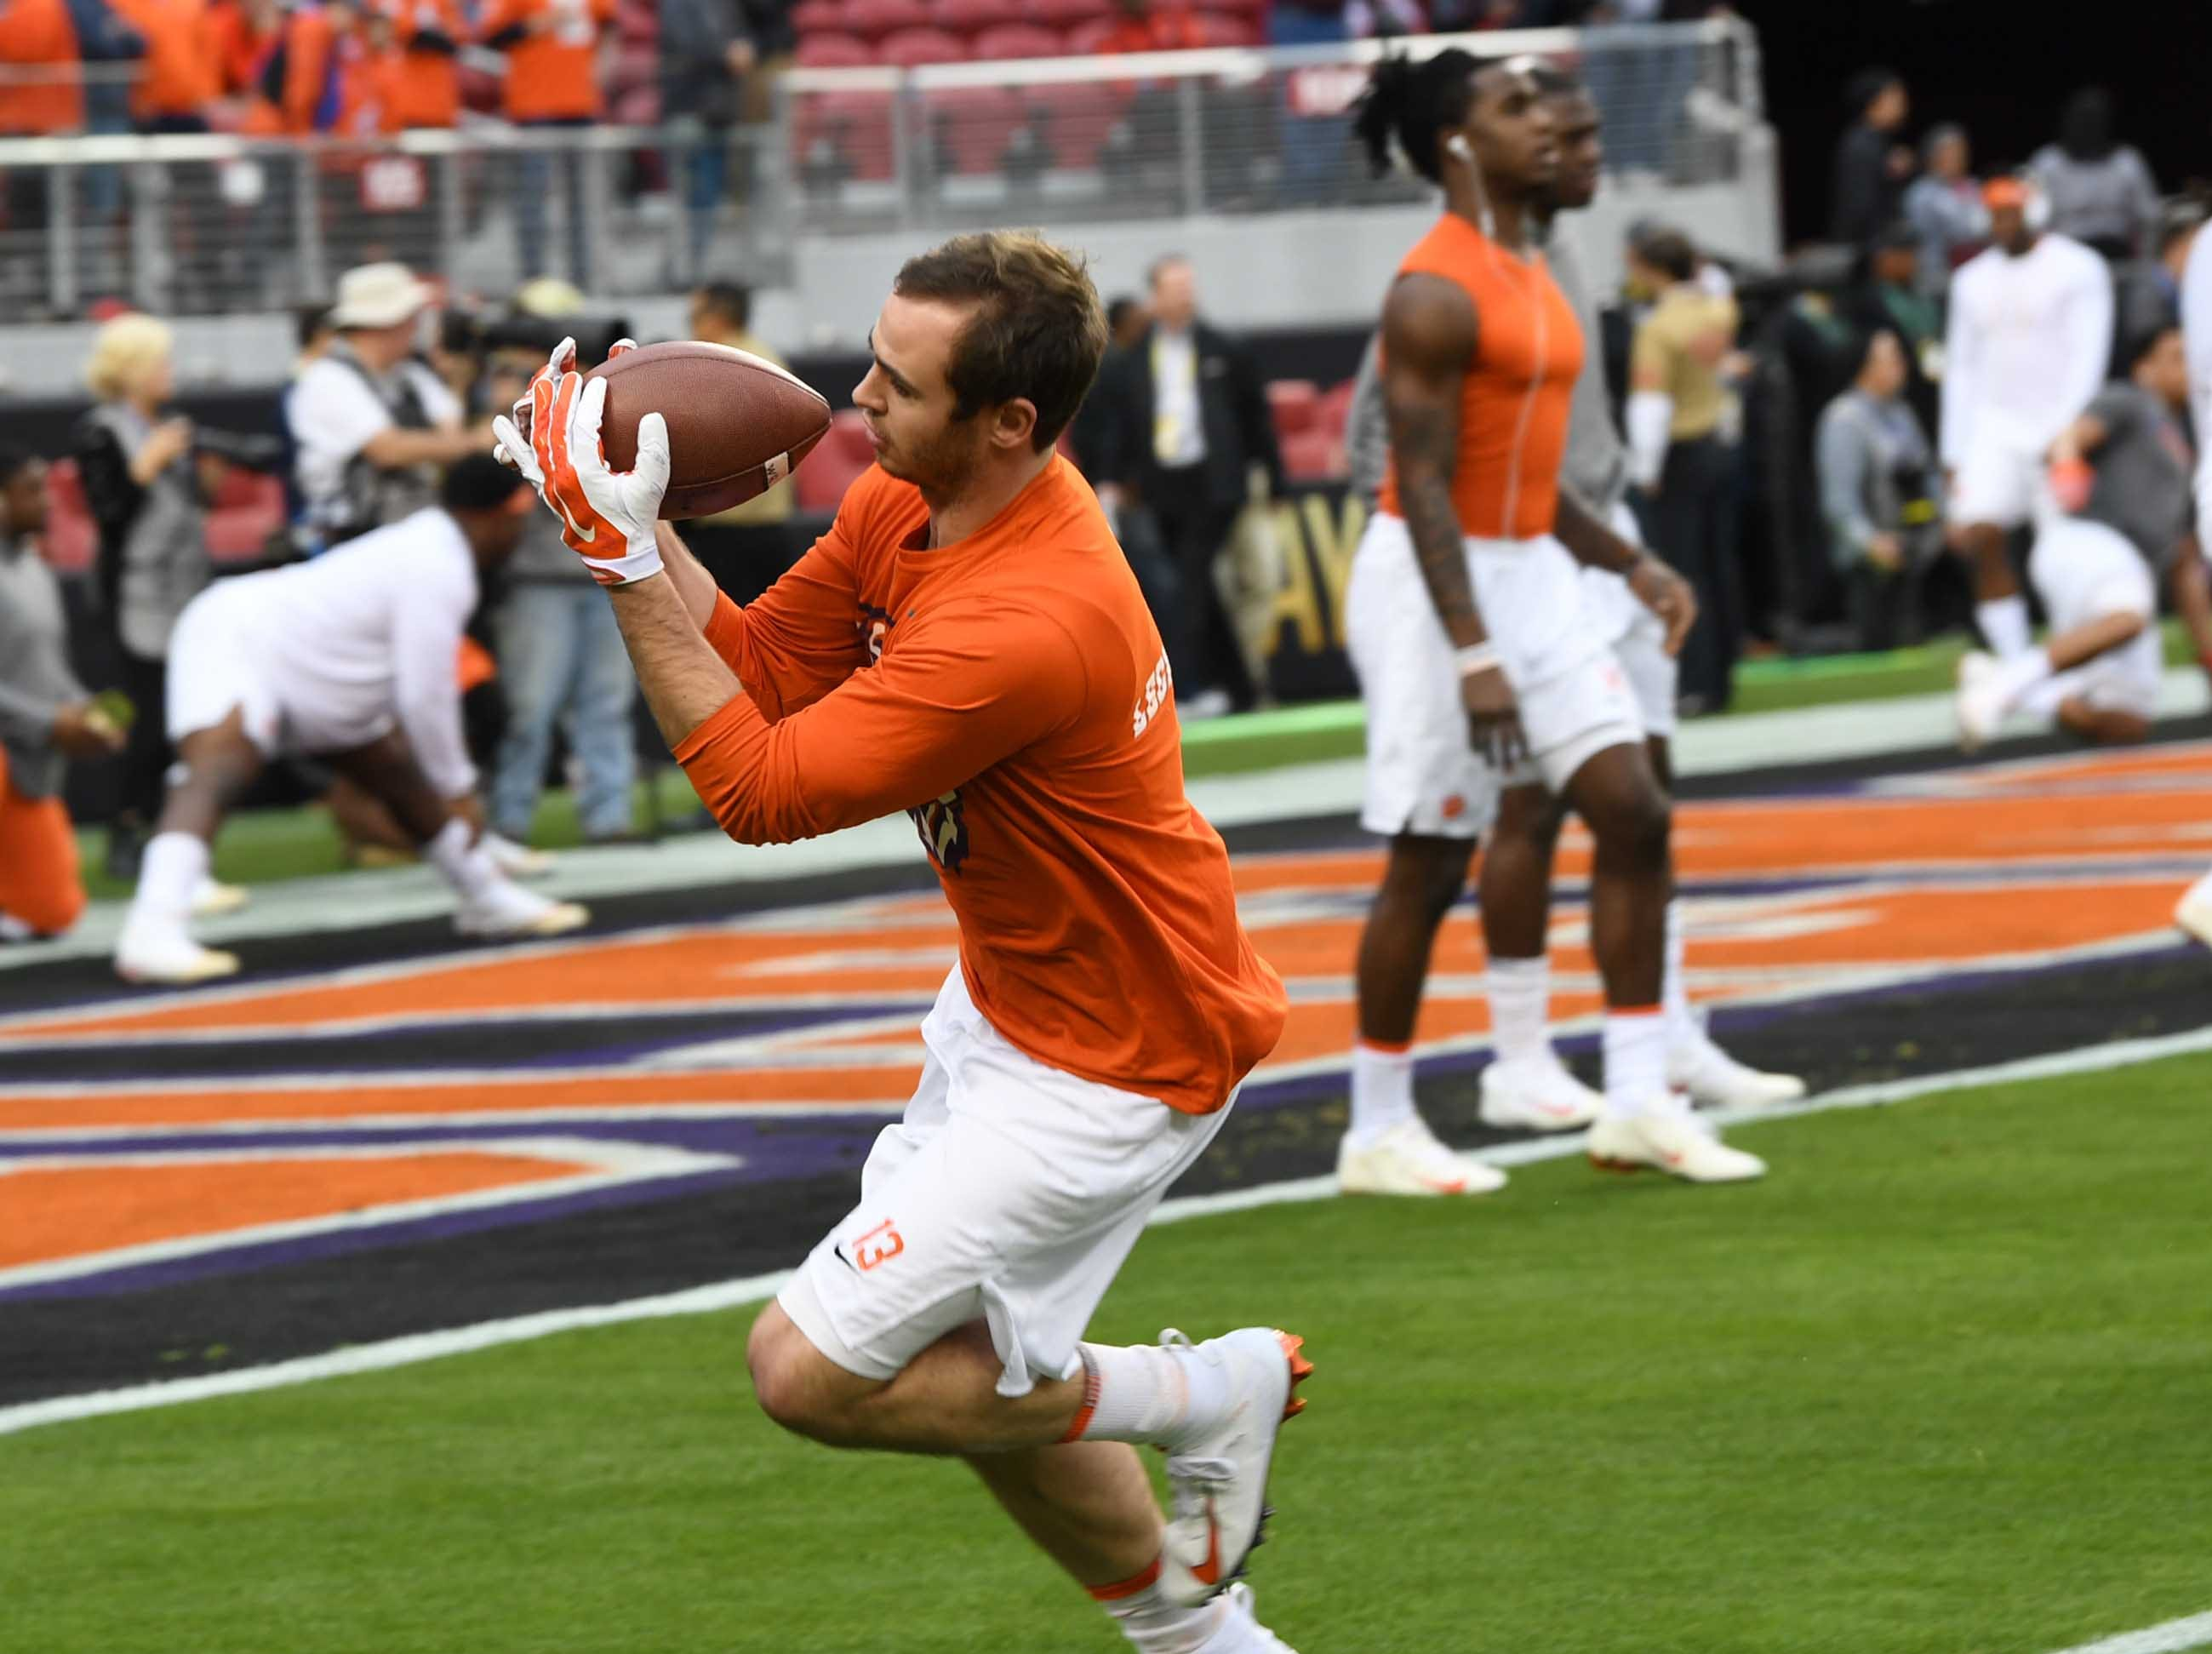 Clemson wide receiver Hunter Renfrow (13) practices before kickoff at Levi's Stadium in Santa Clara, California Monday, January 7, 2019.